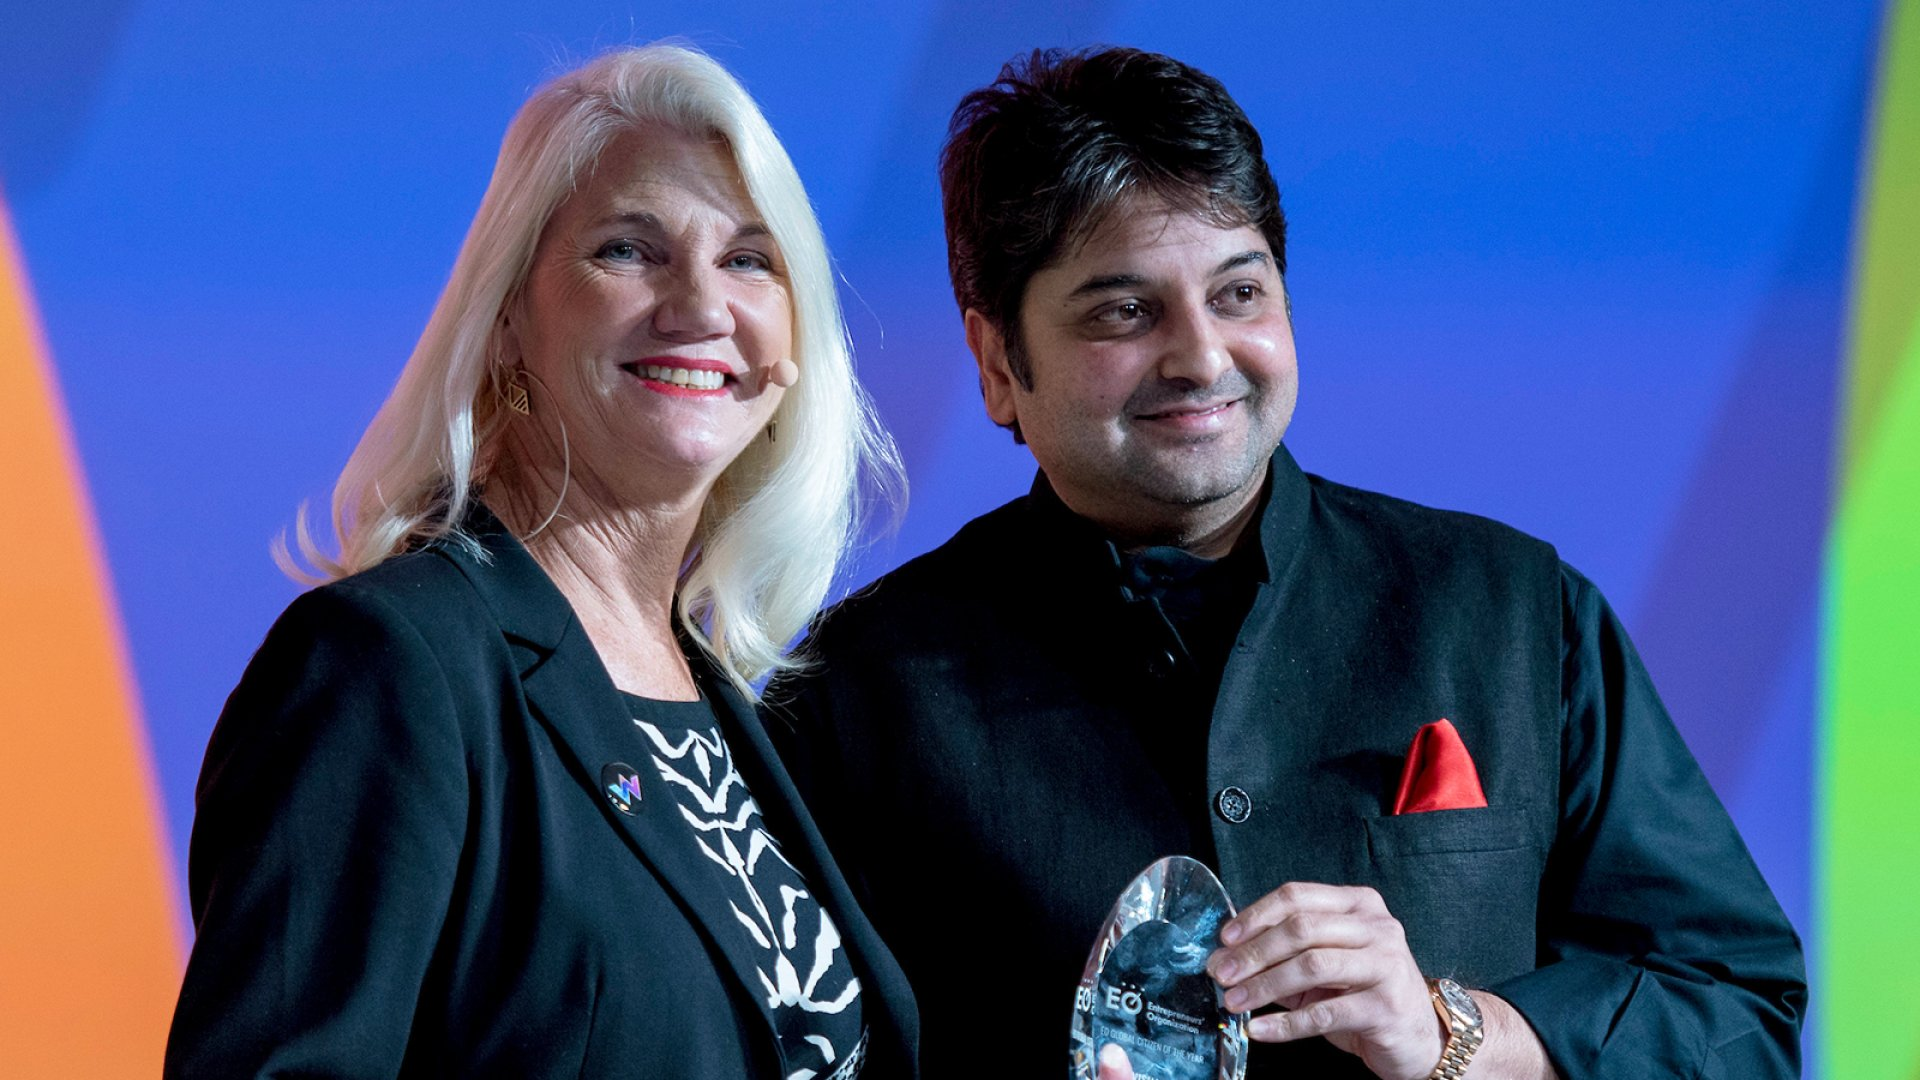 Kimberly Hickok-Smith presents Vishal Chordia with the 2018 EO Global Citizen of the Year award.